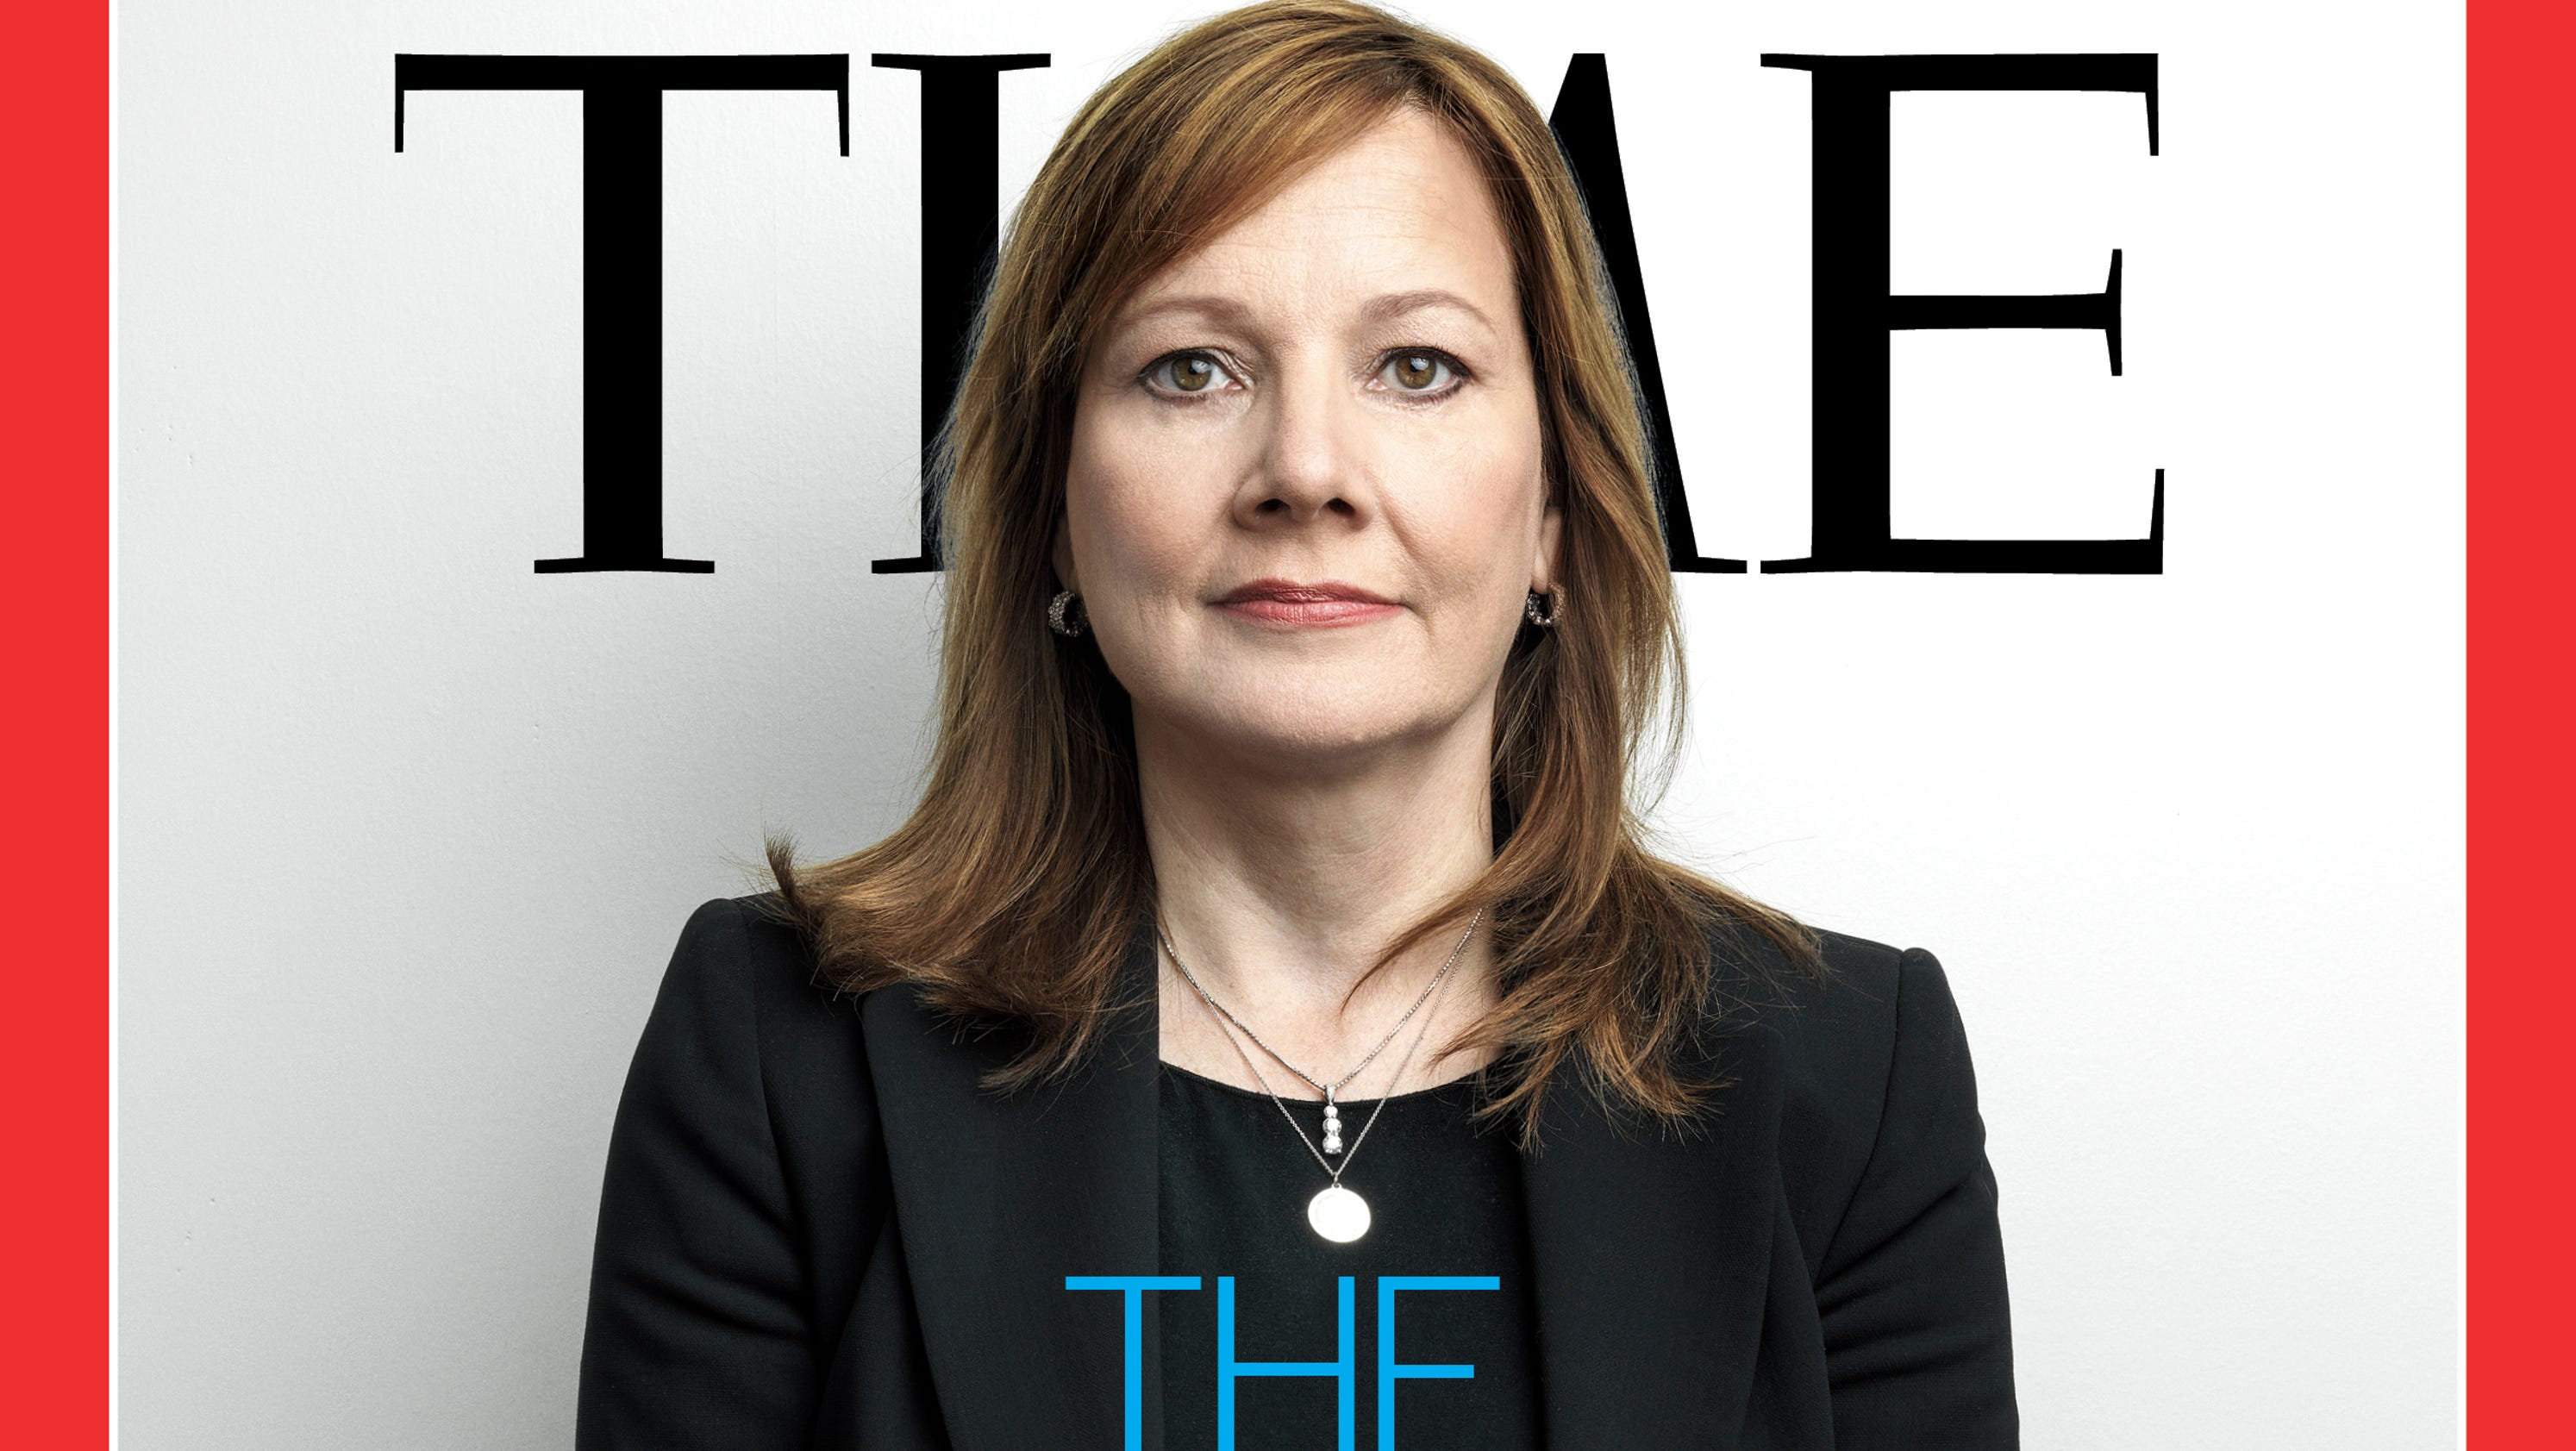 Five Things Time Revealed About Gm Ceo Mary Barra